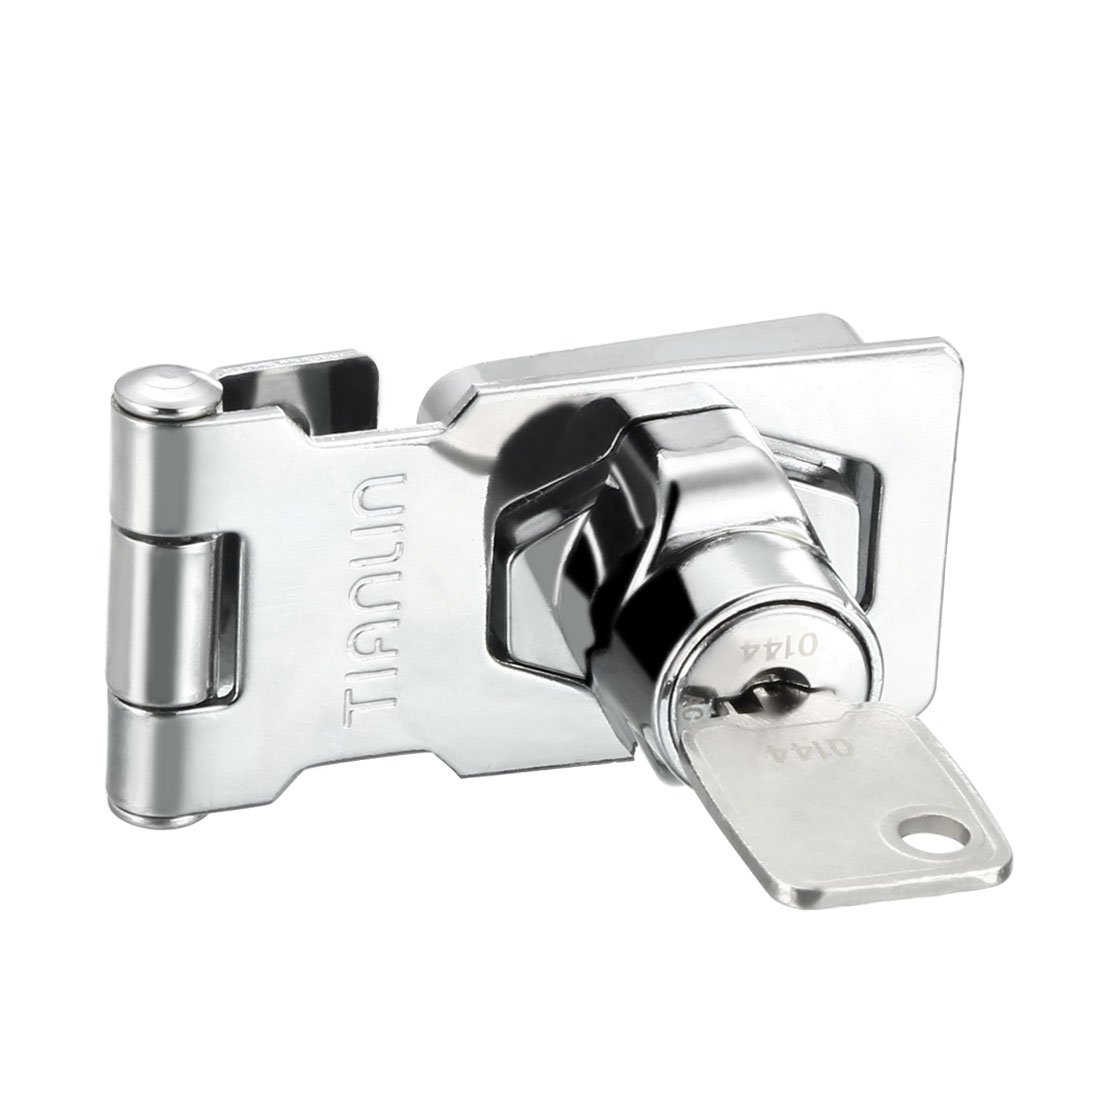 uxcell Keyed Hasp Lock Latch Lock for Doors Cabinets Silver, Zinc Alloy Plated, 3.07''x1.42'', 1pcs